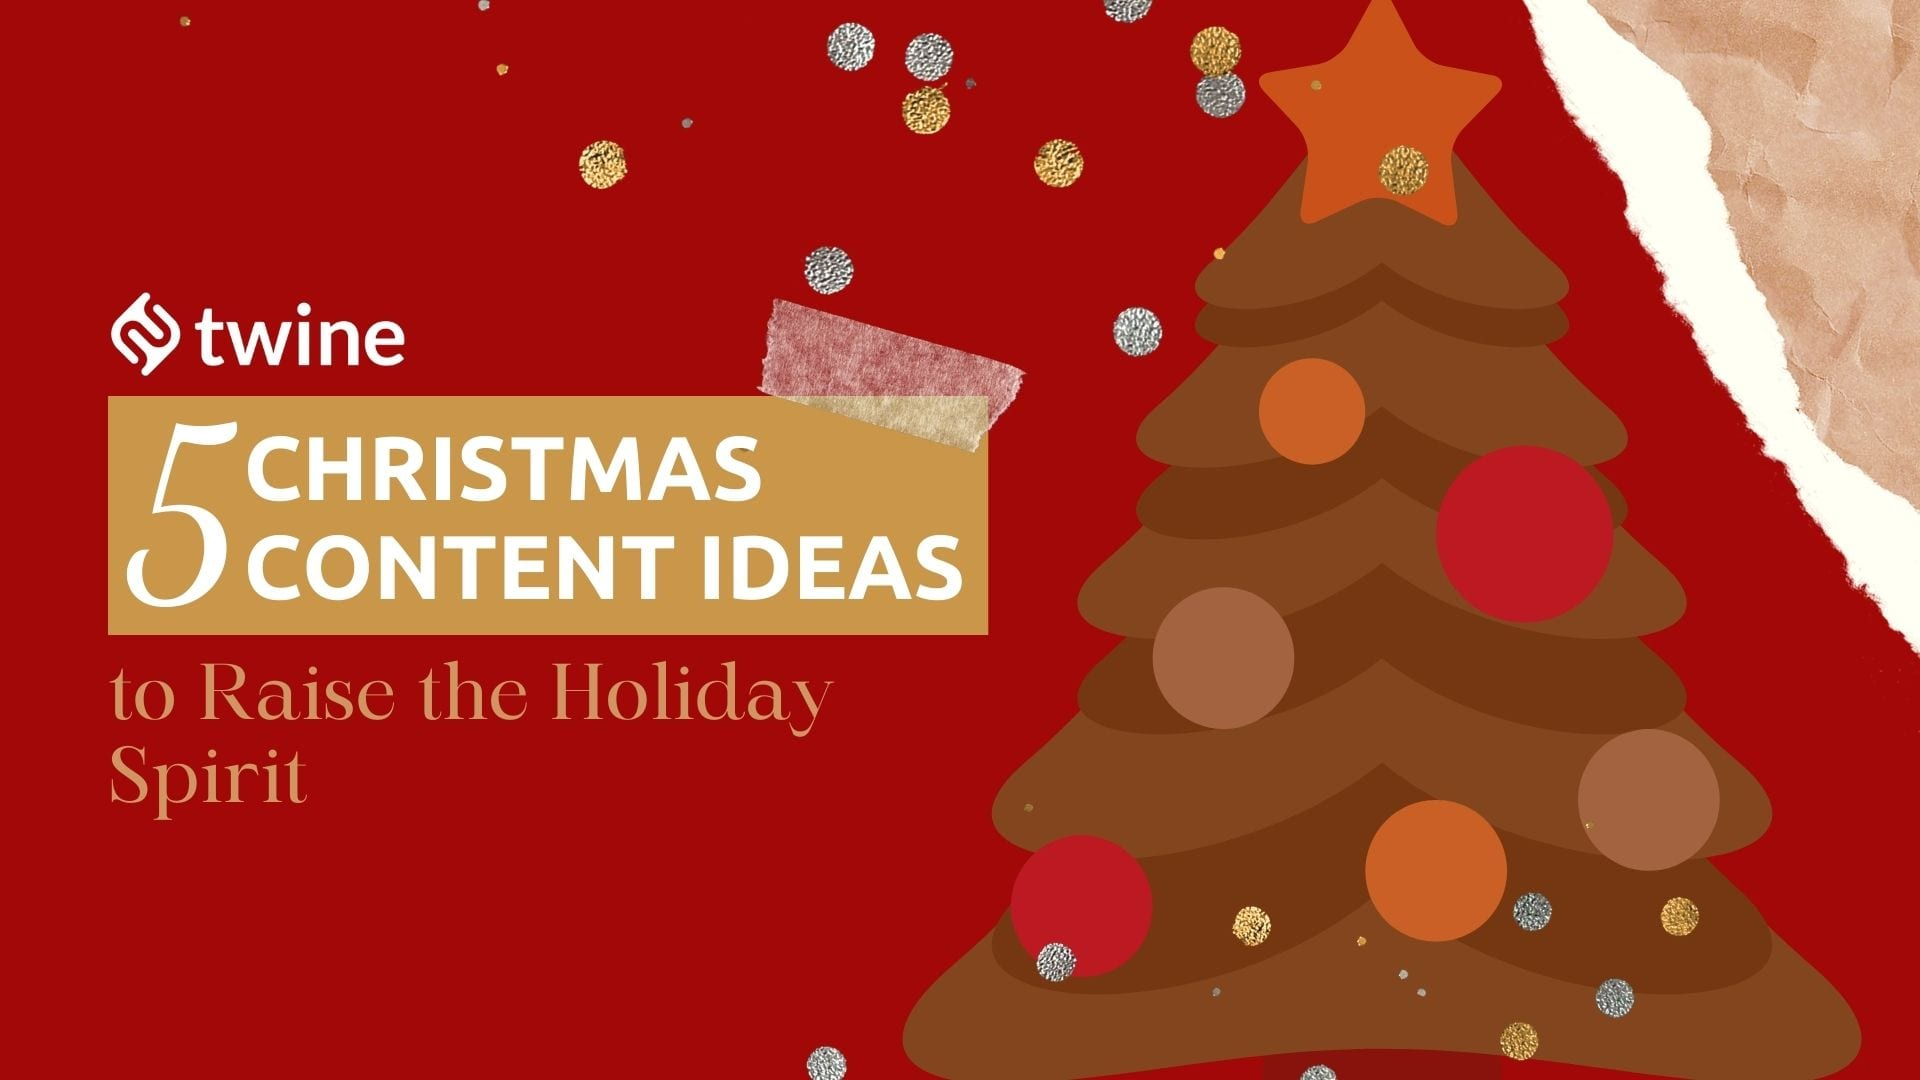 twine thumbnail 5 Christmas content ideas to raise the holiday spirit